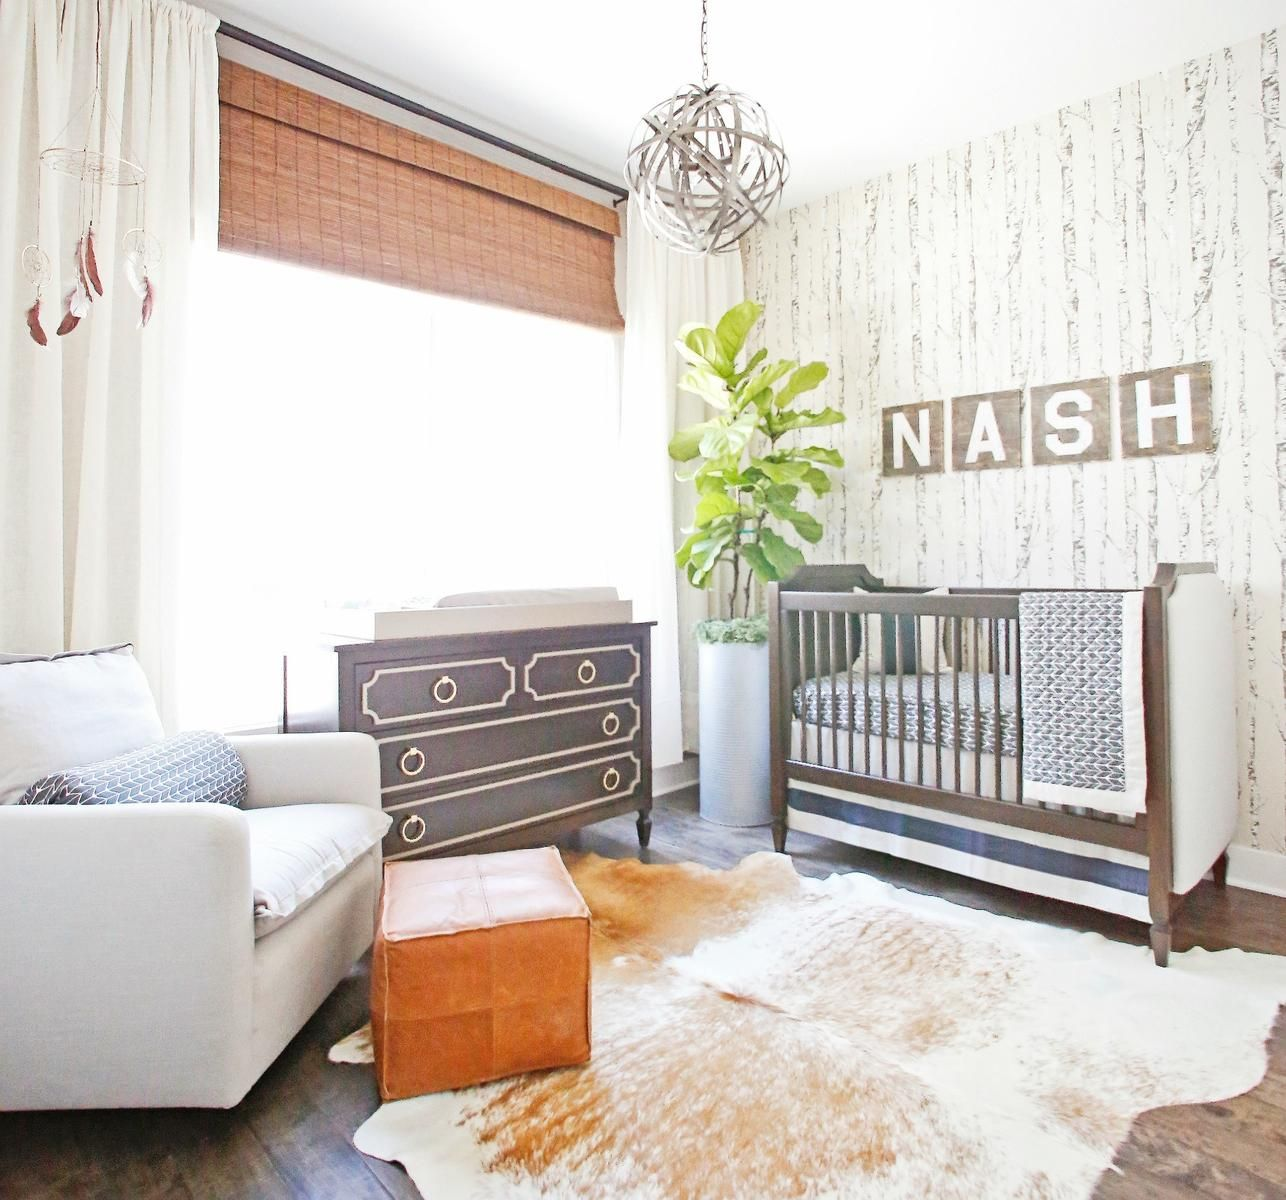 Undeniable Wall Decal With Nash Print Creating A Character Of Baby Nursery Interior